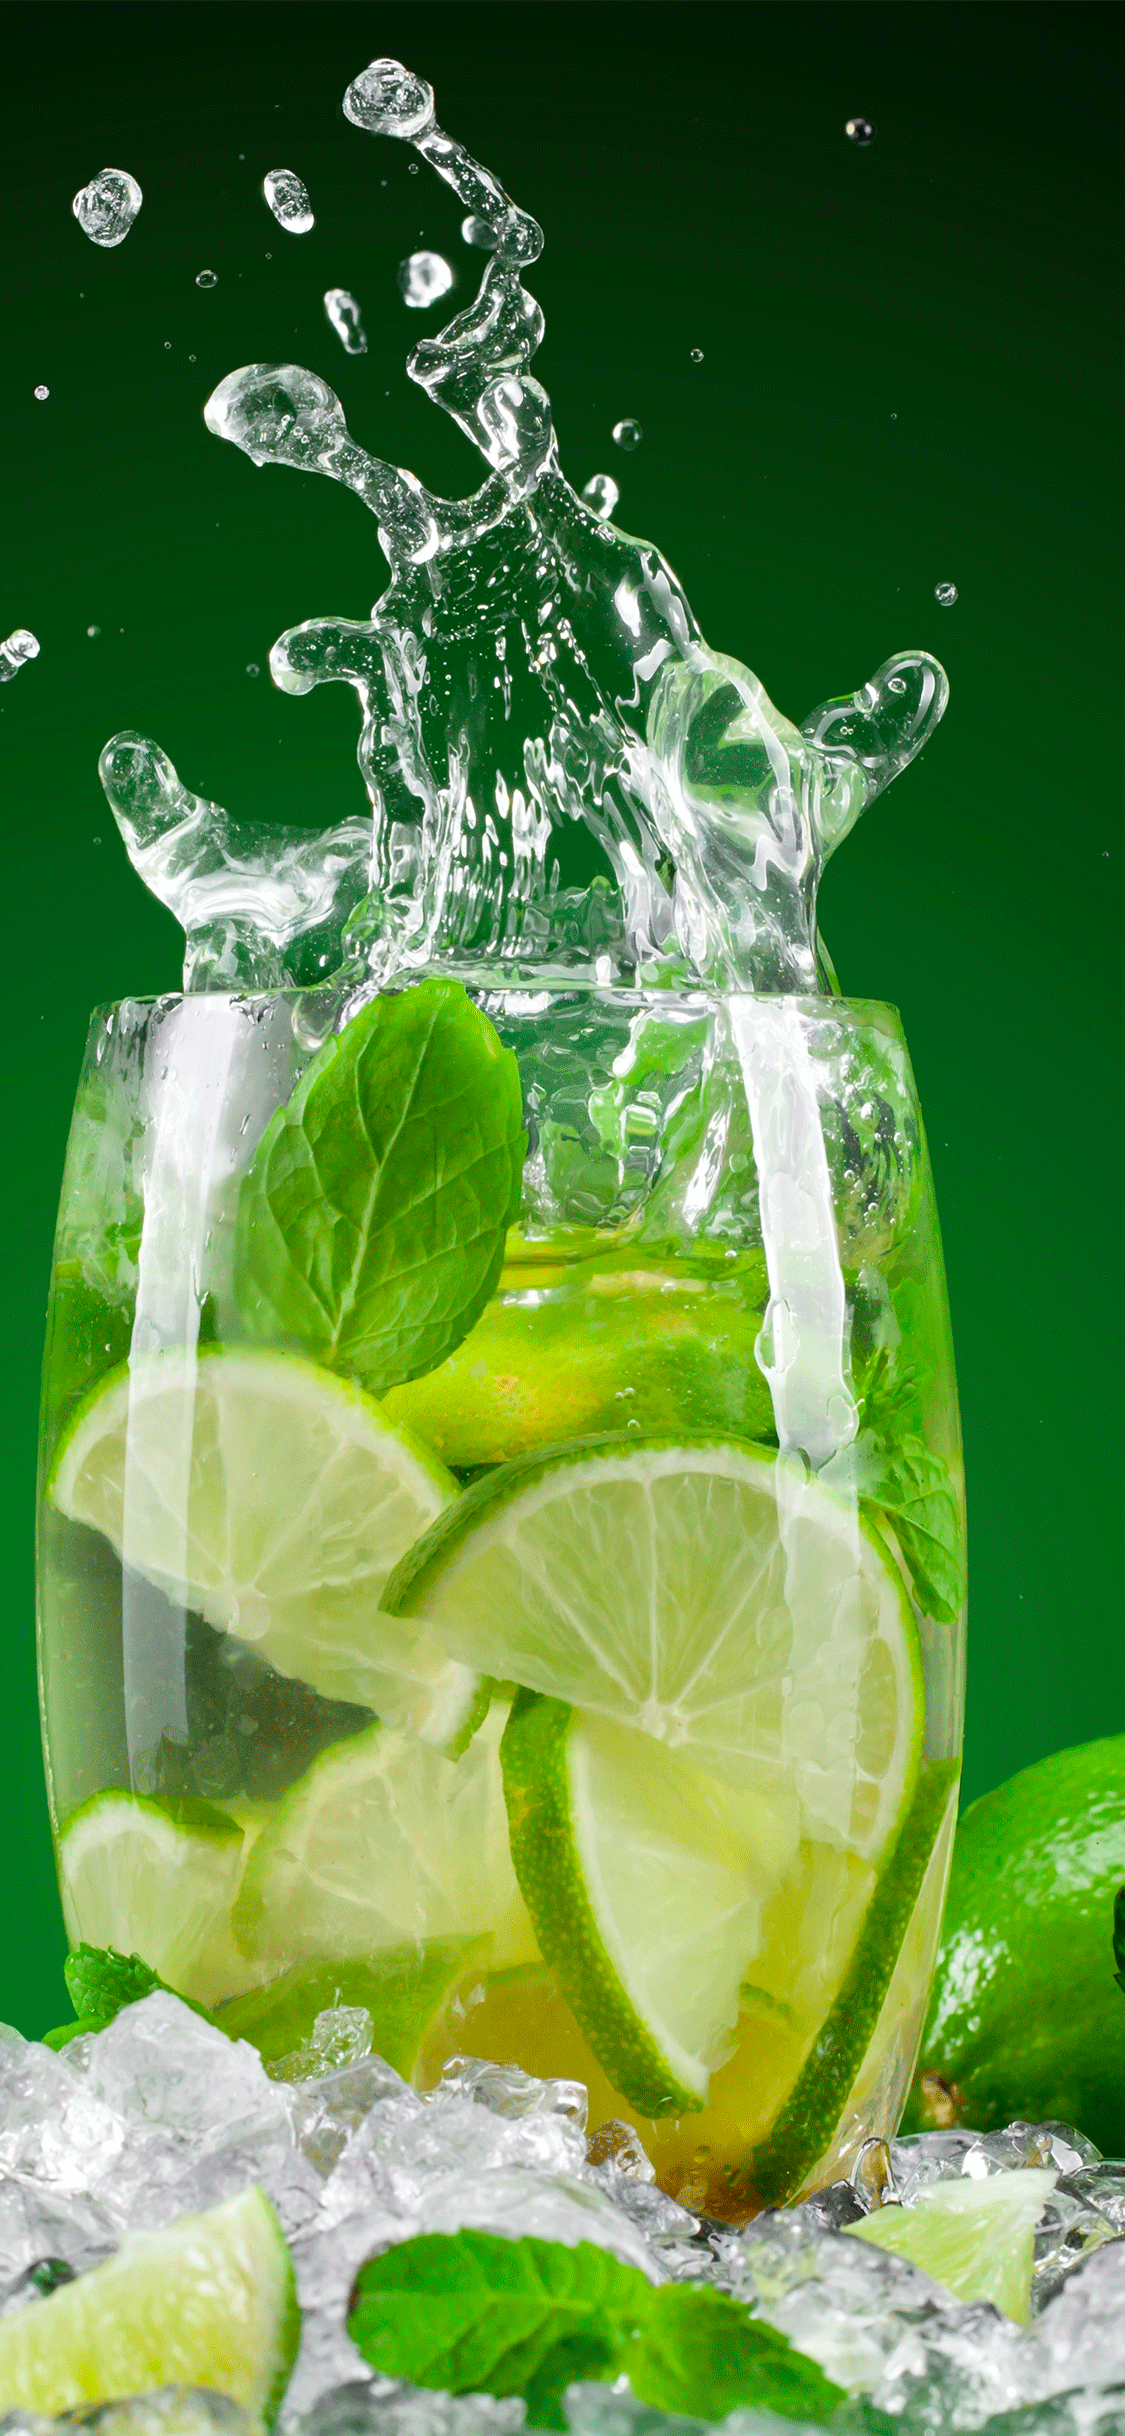 iPhone wallpaper cocktail lime Fonds d'écran iPhone du 27/06/2018